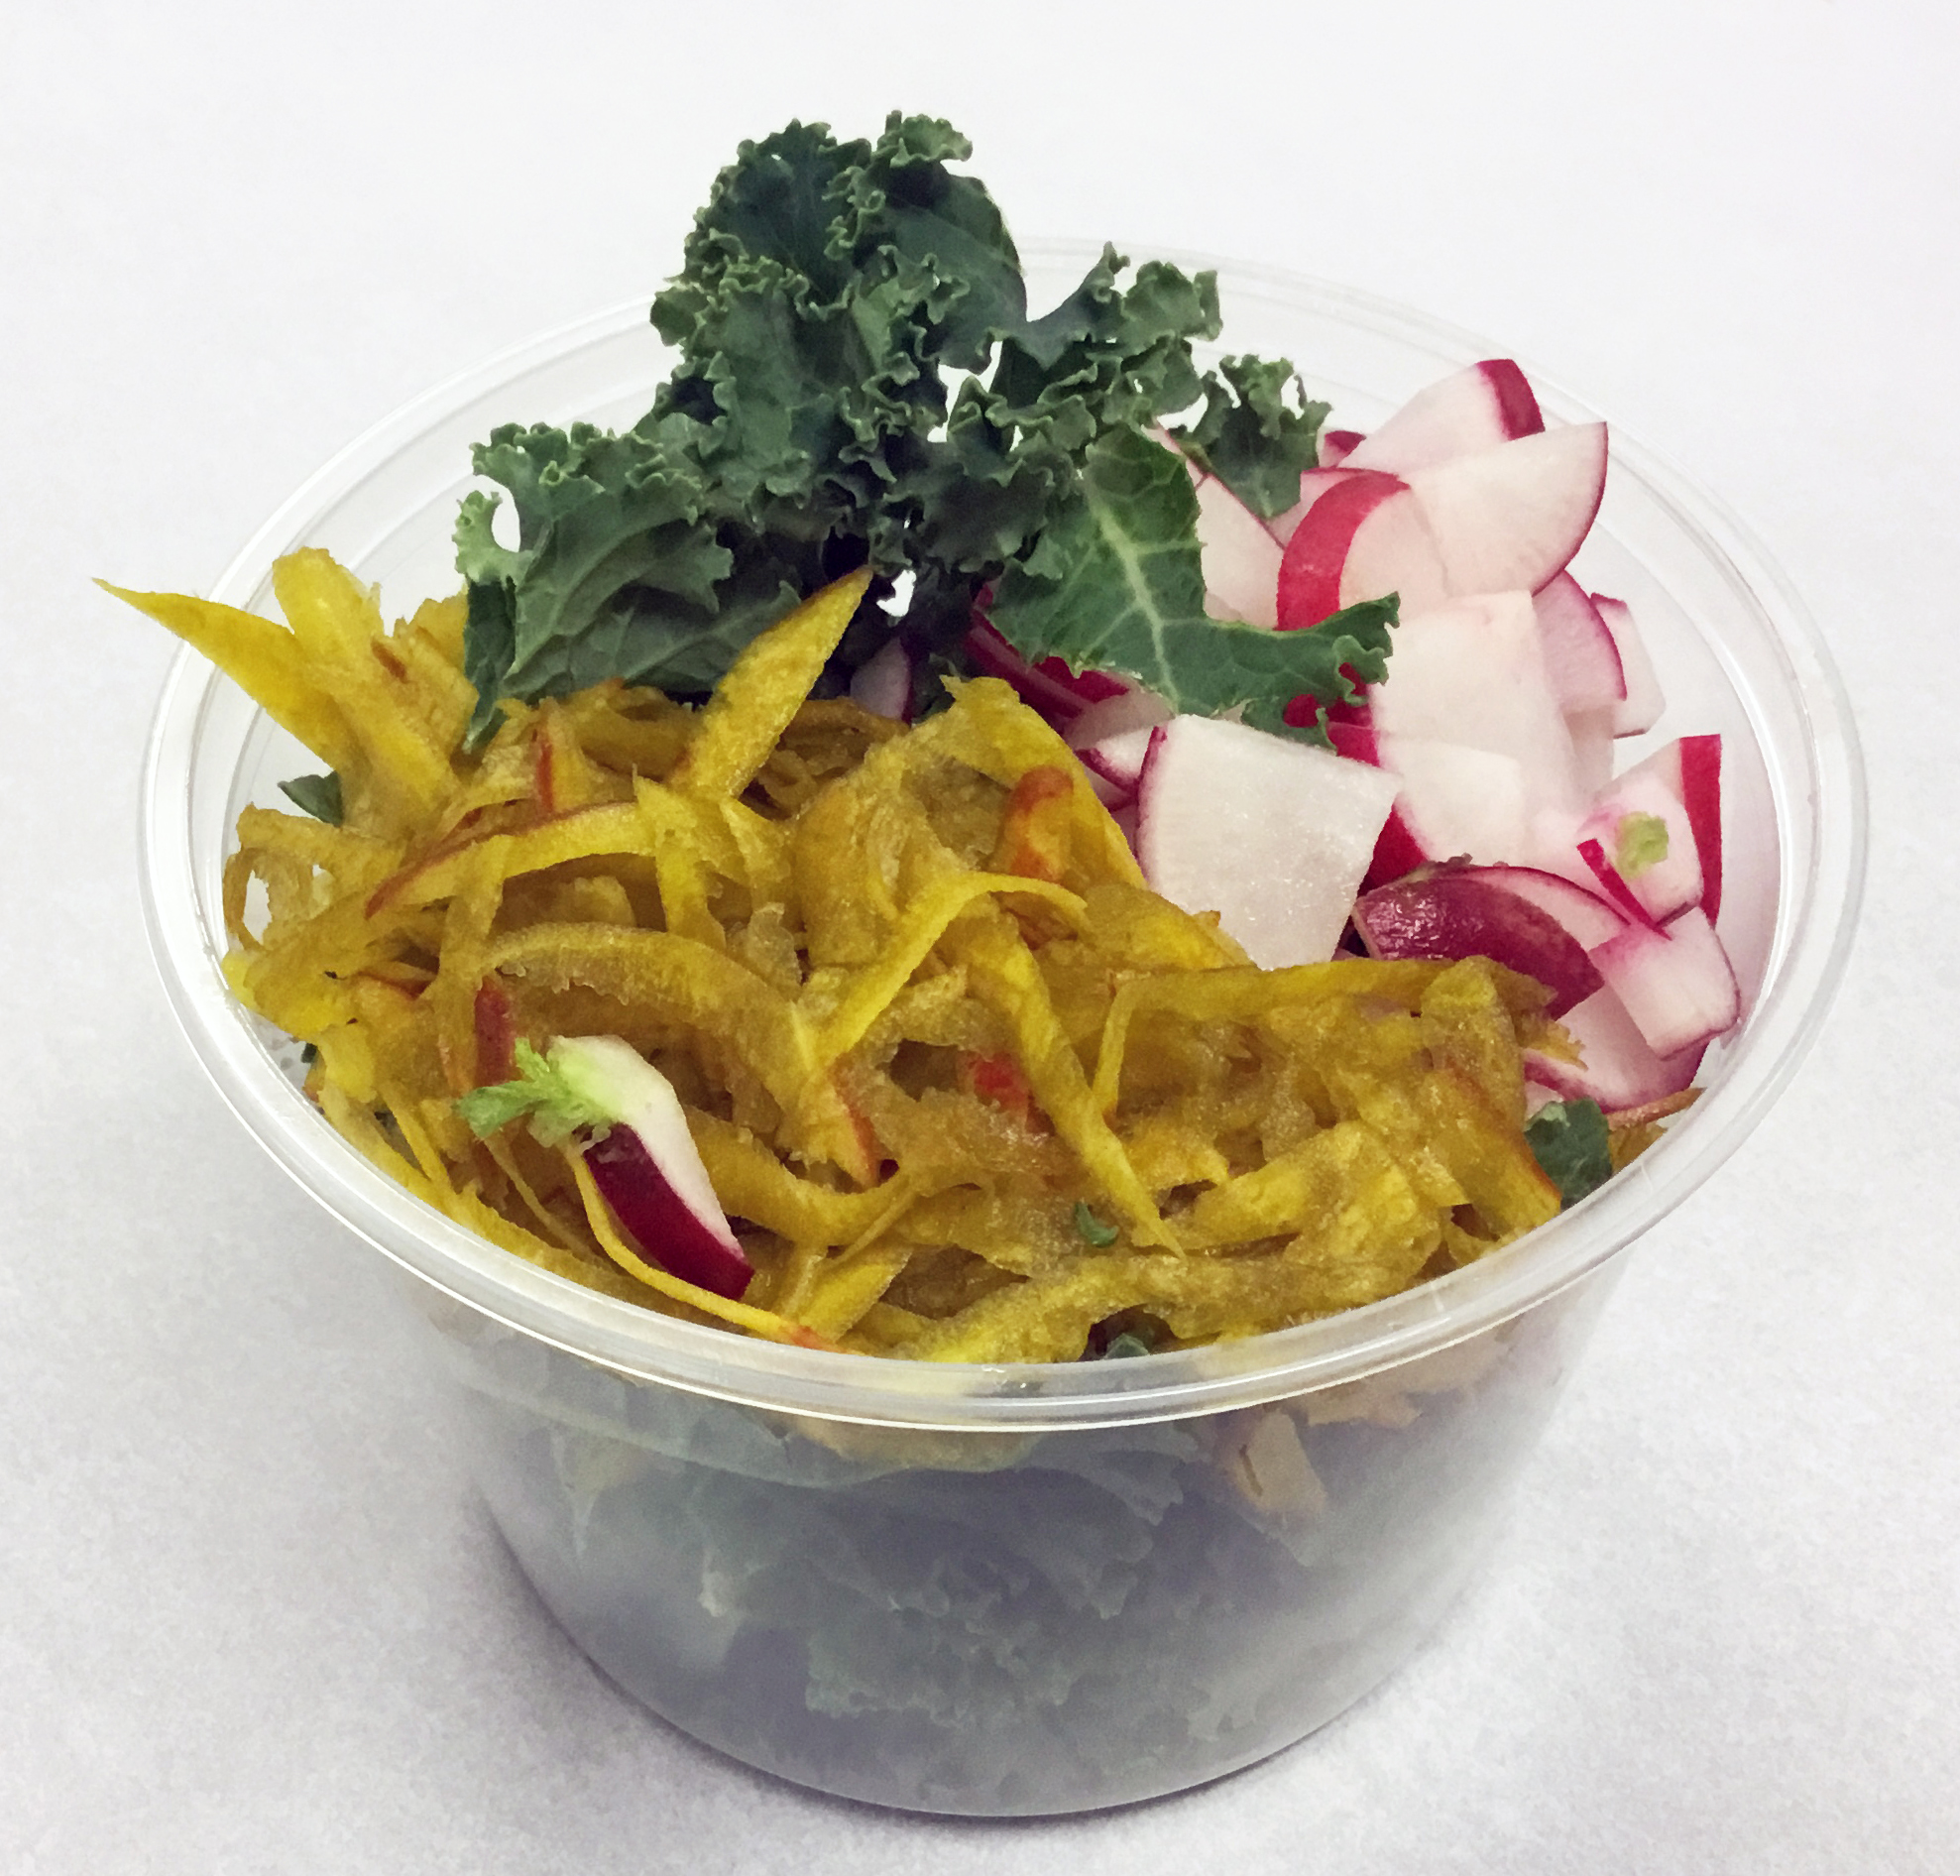 Curly kale, red radish and yellow beets.